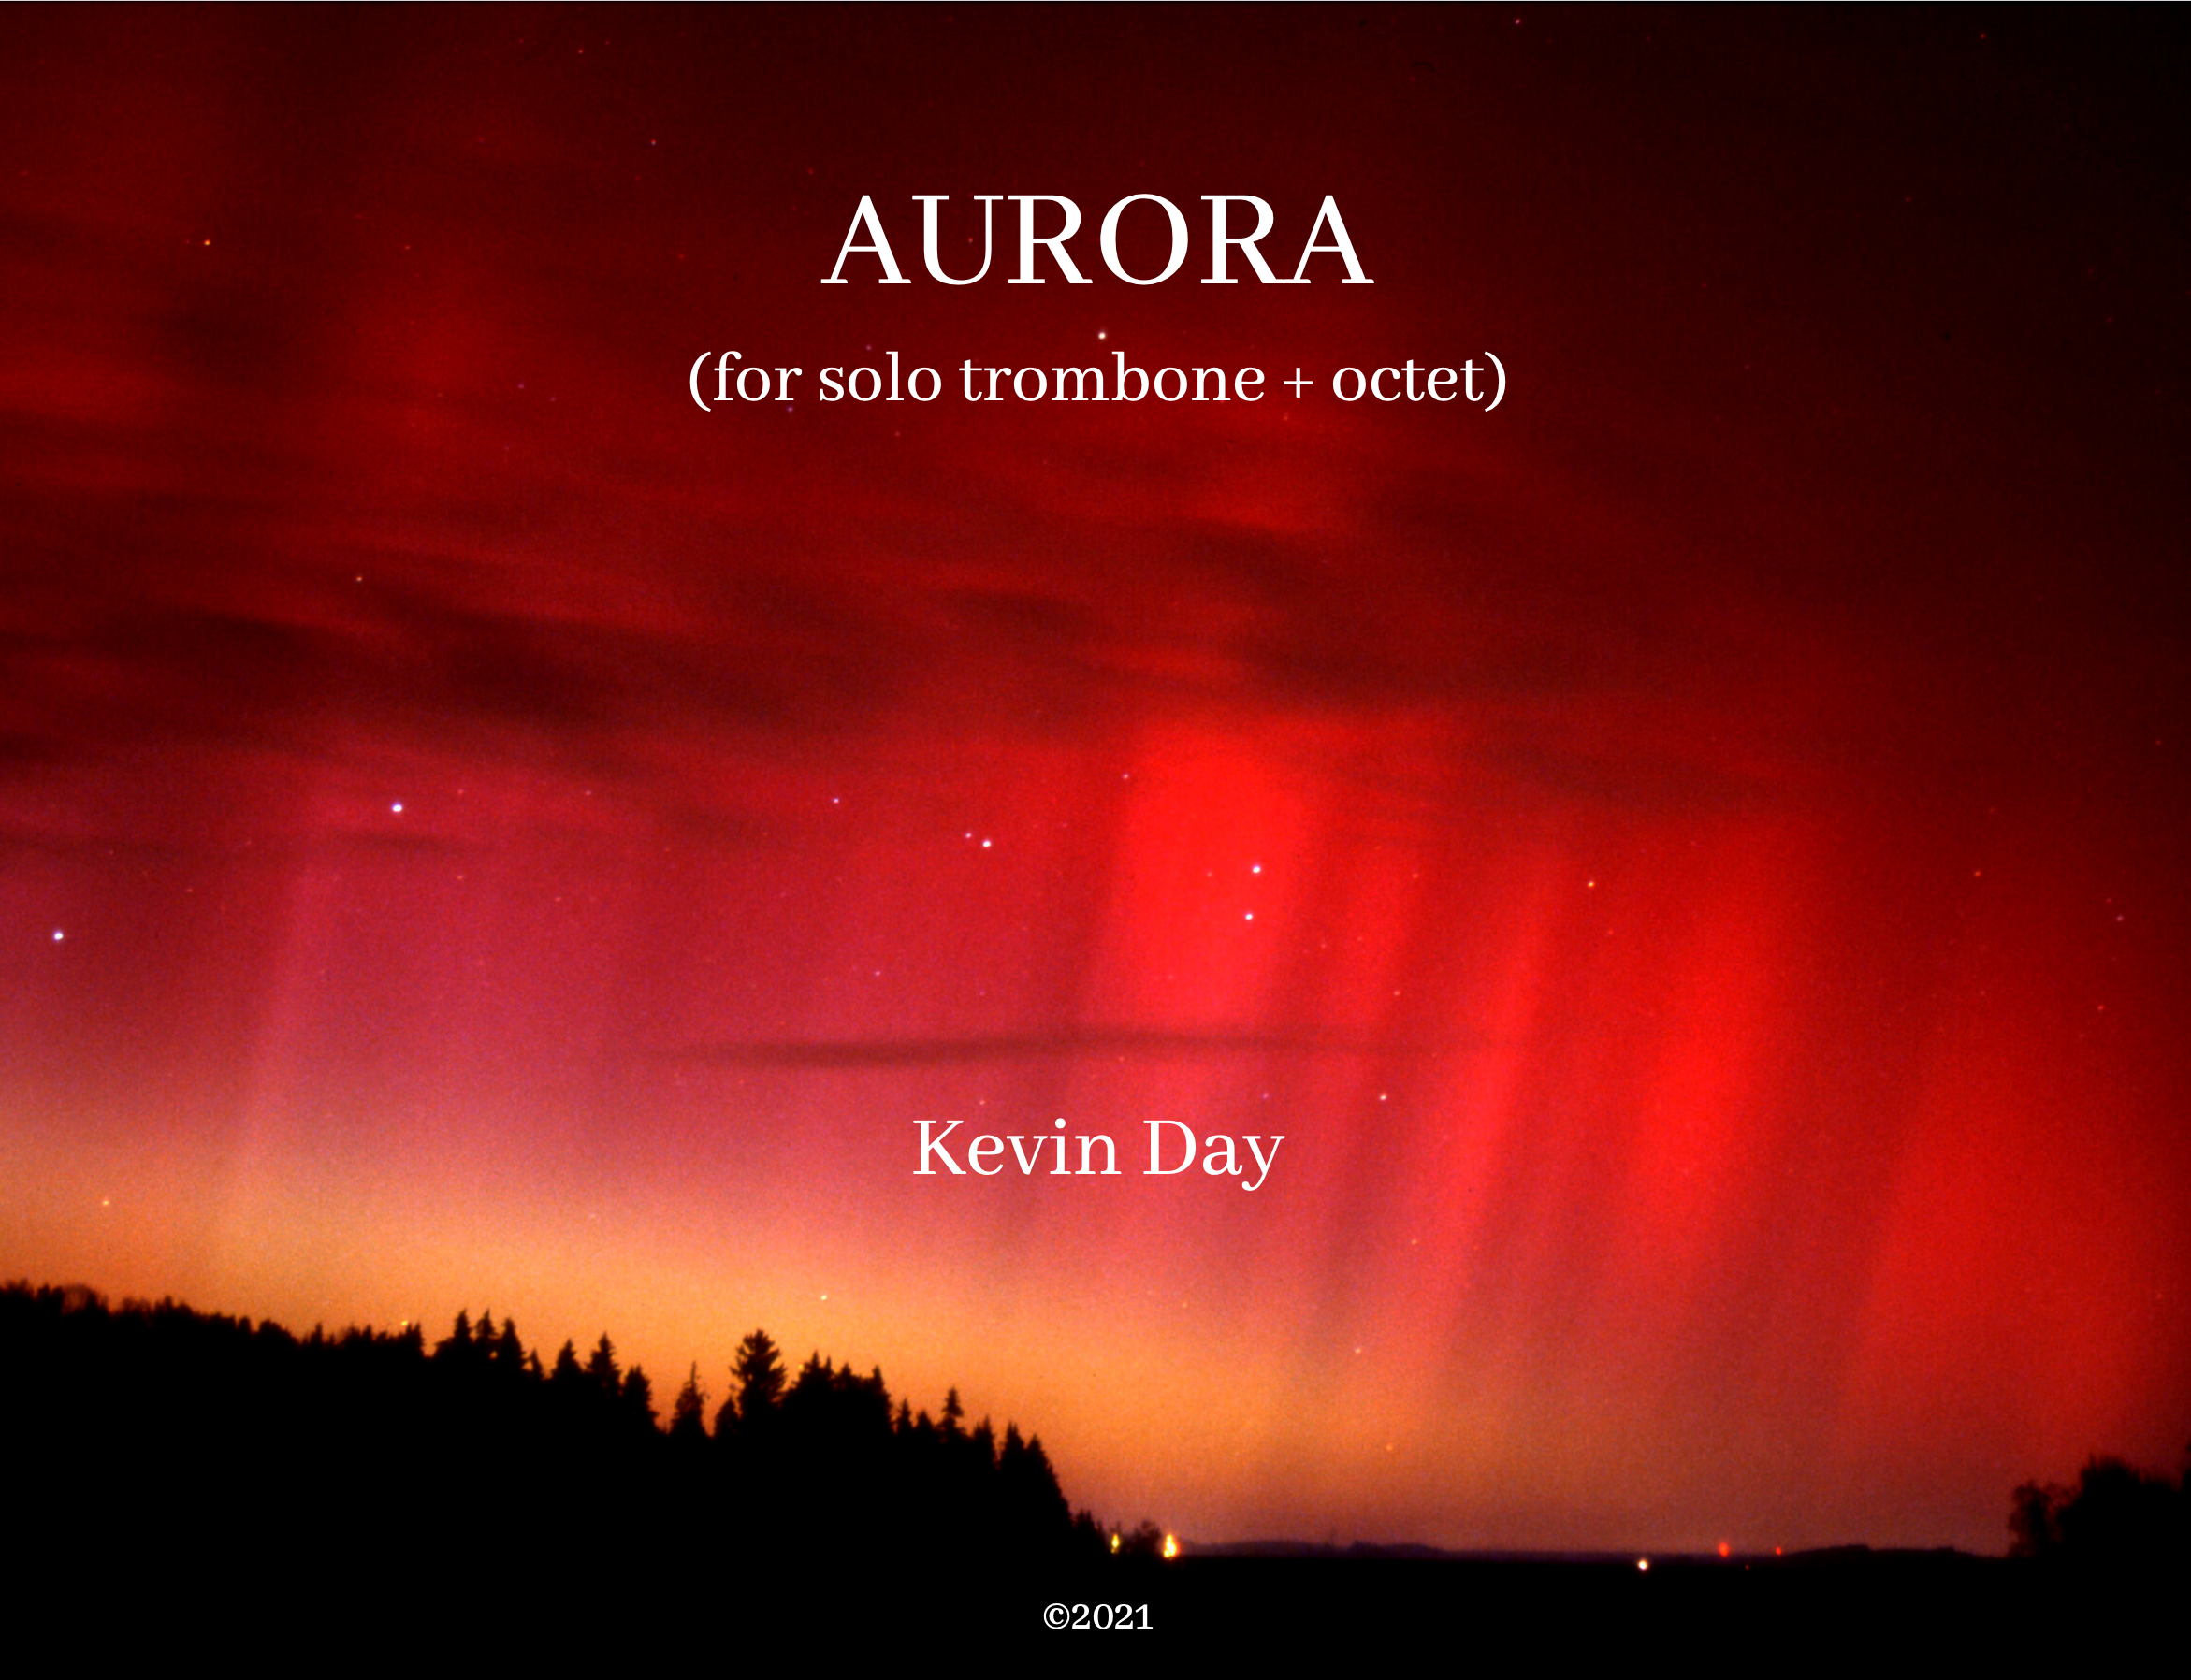 Aurora by Kevin Day